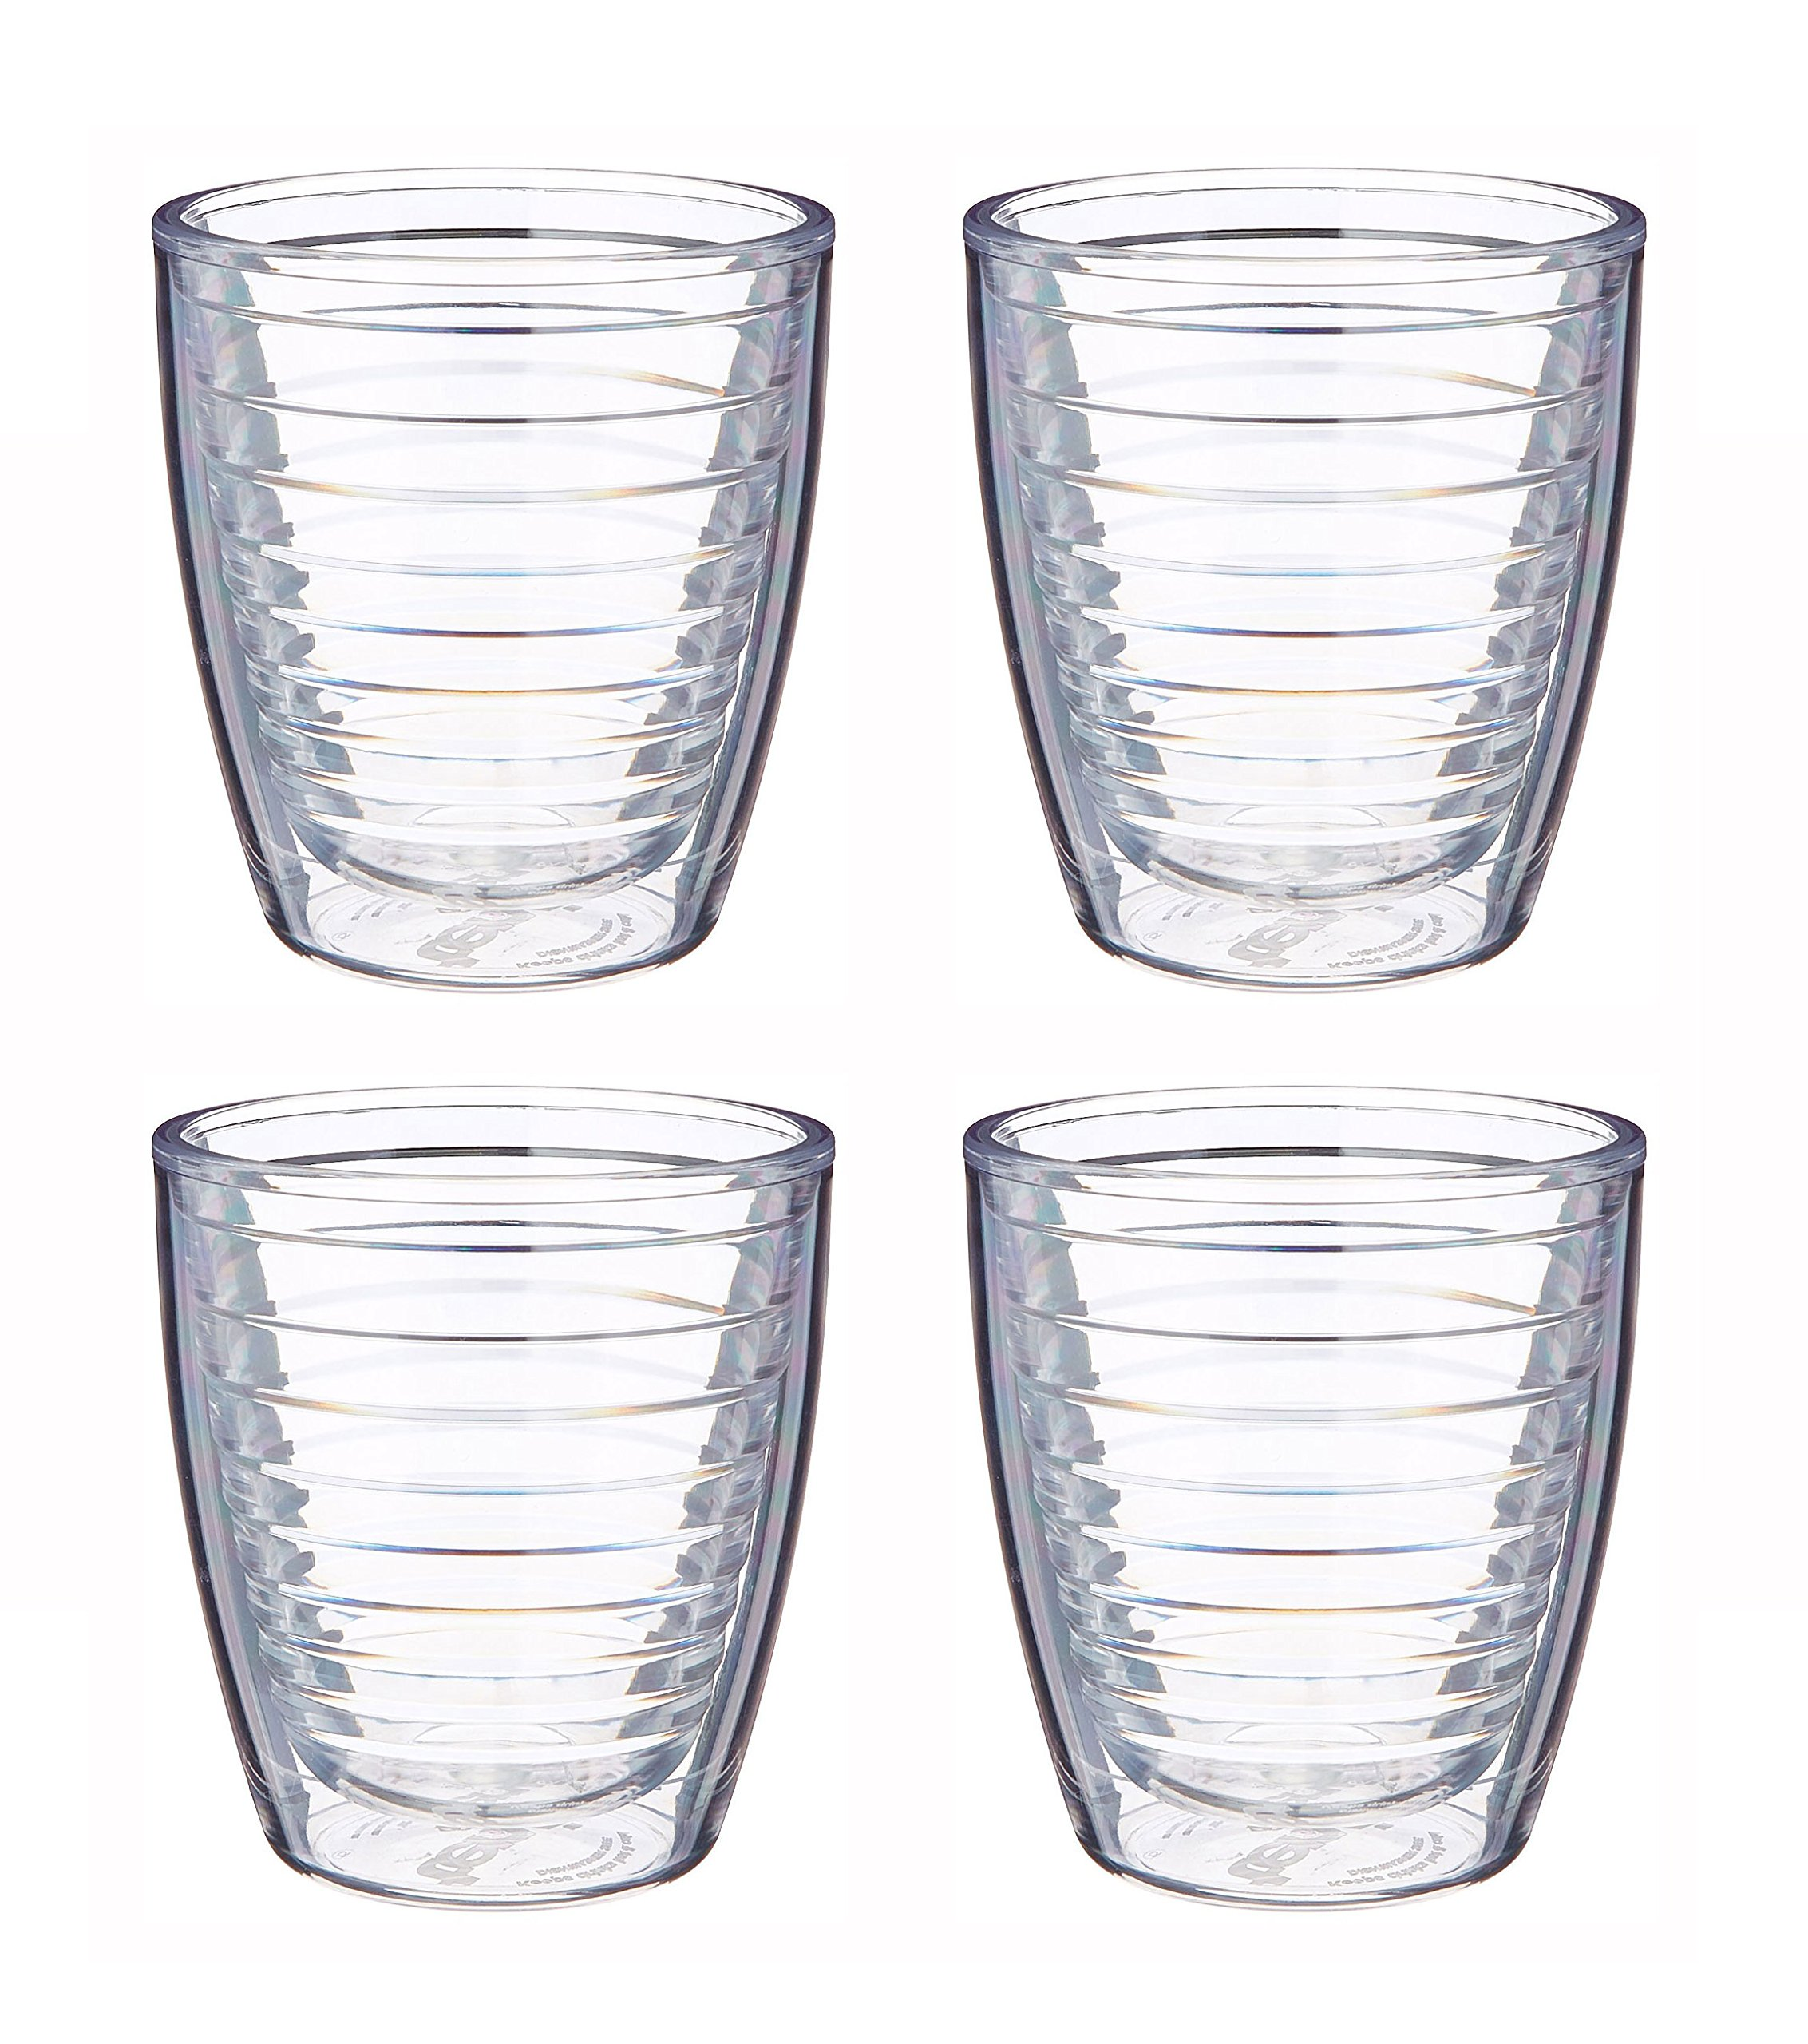 Tervis 12oz clear tumbler set of four tumblers, 3.75 inches in diameter by 4.25 inches tall